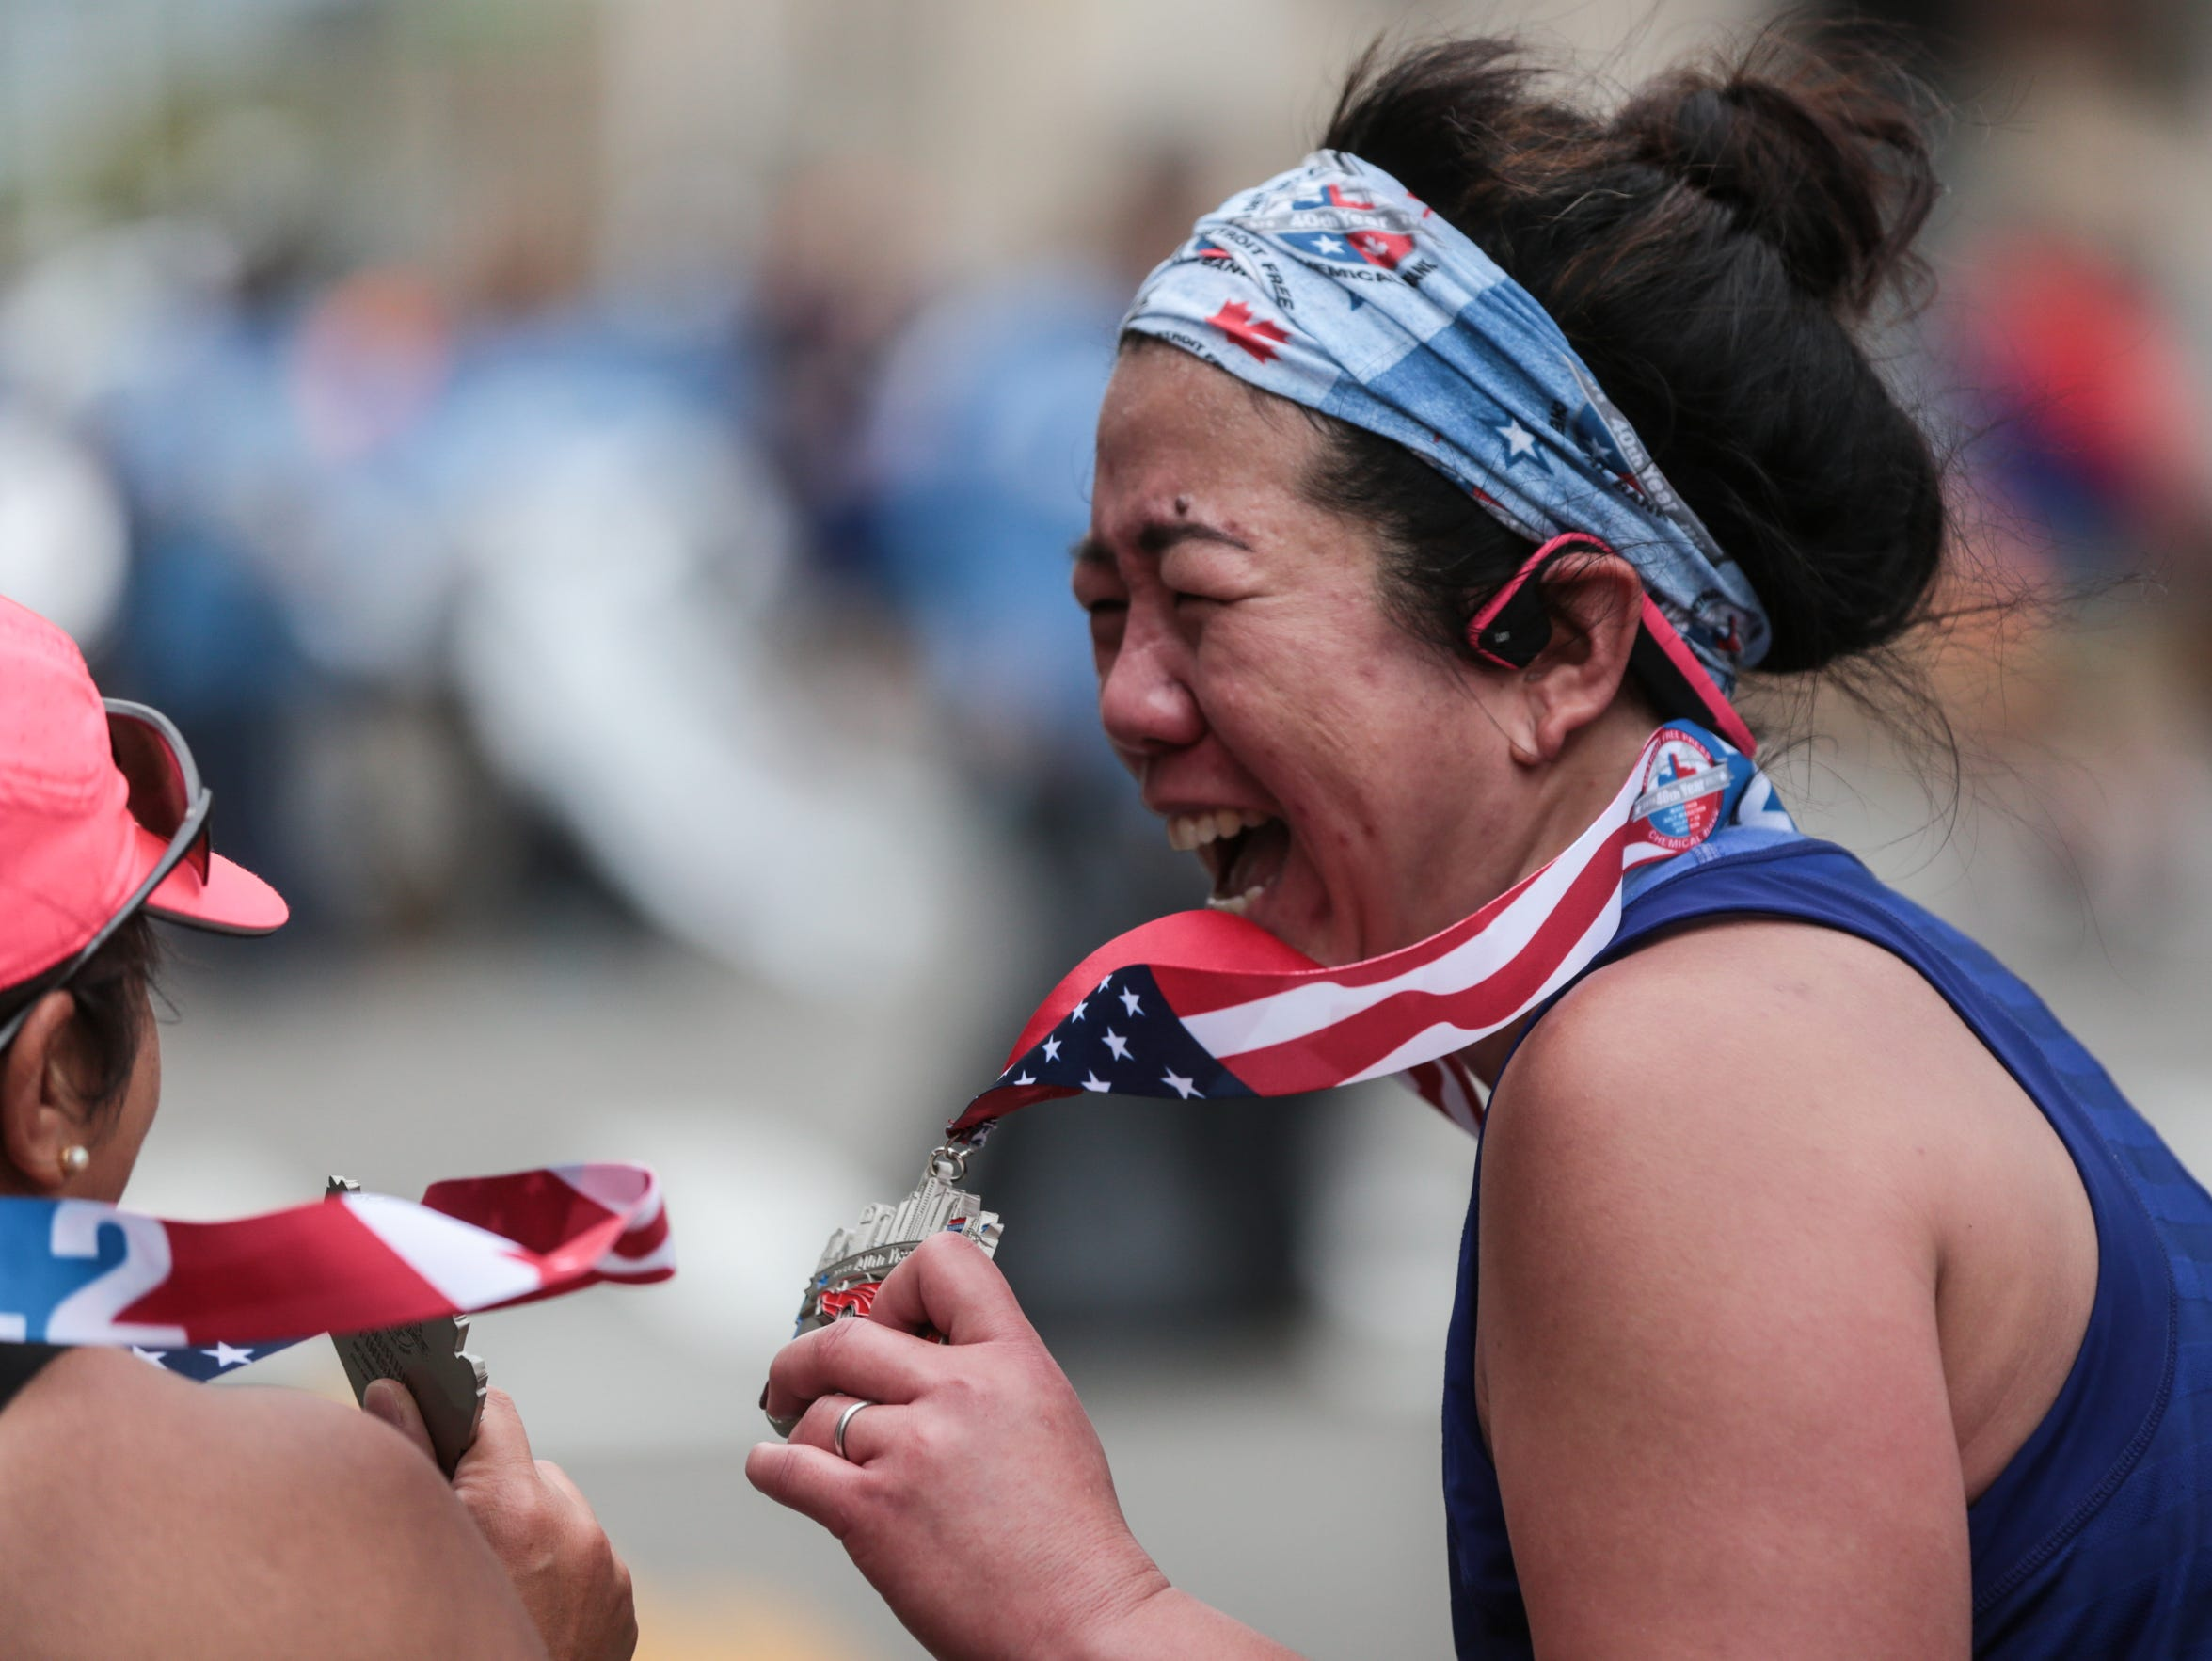 Pauline Lee, right, of Milford and Julia Castillo of Warren show their medals to each other while celebrating finishing the full marathon during the 40th Annual Detroit Free Press/Chemical Bank Marathon in Detroit on Sunday, Oct. 15, 2017.